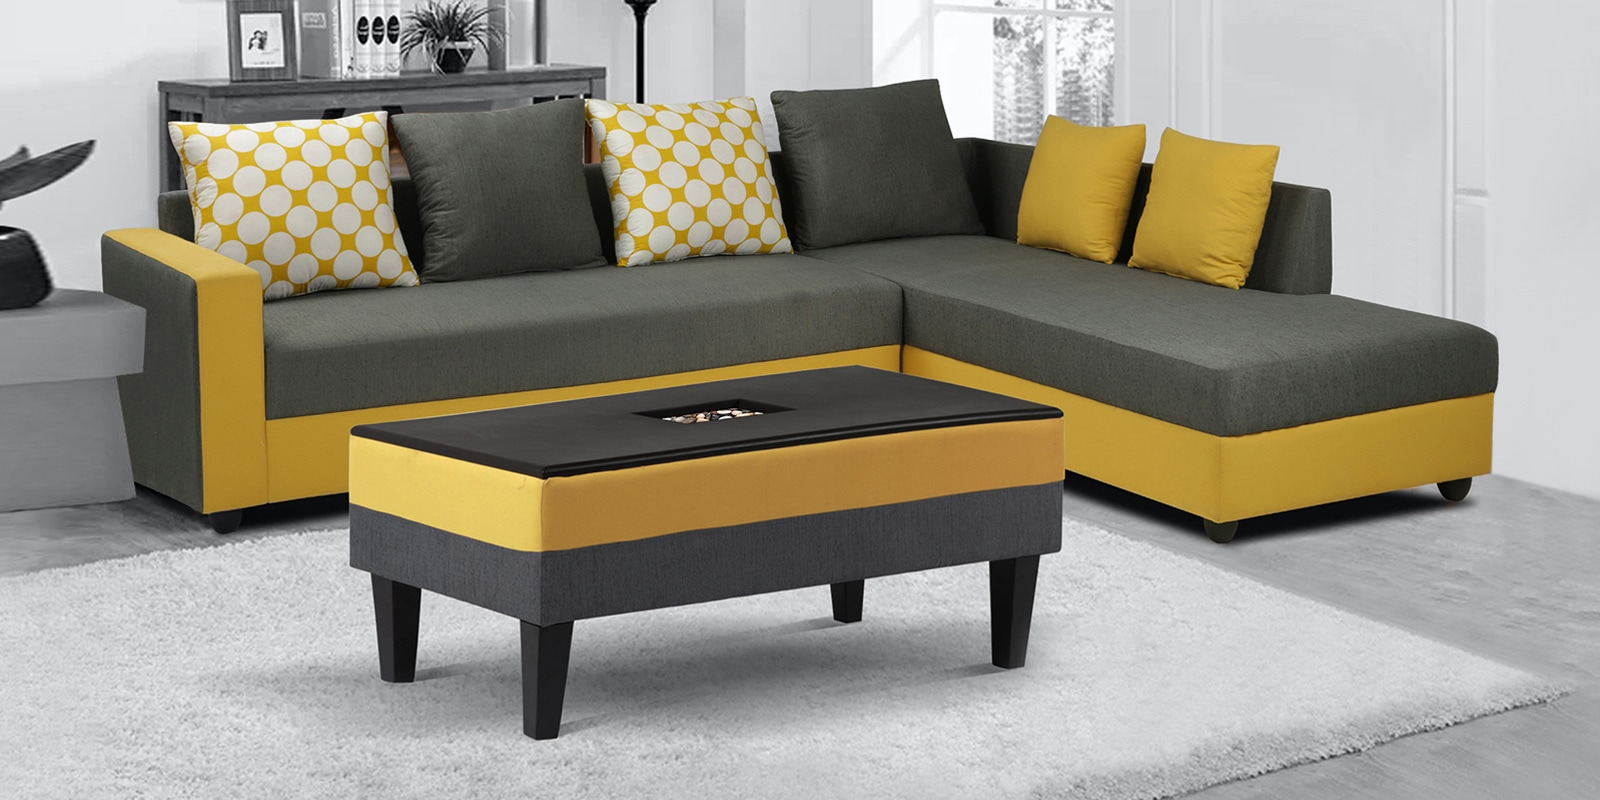 Buy Brisbane Lhs 3 Seater Sofa With Coffee Table In Grey Yellow Colour By Arra Online Modern Lhs Sectional Sofas Sectional Sofas Furniture Pepperfry Product